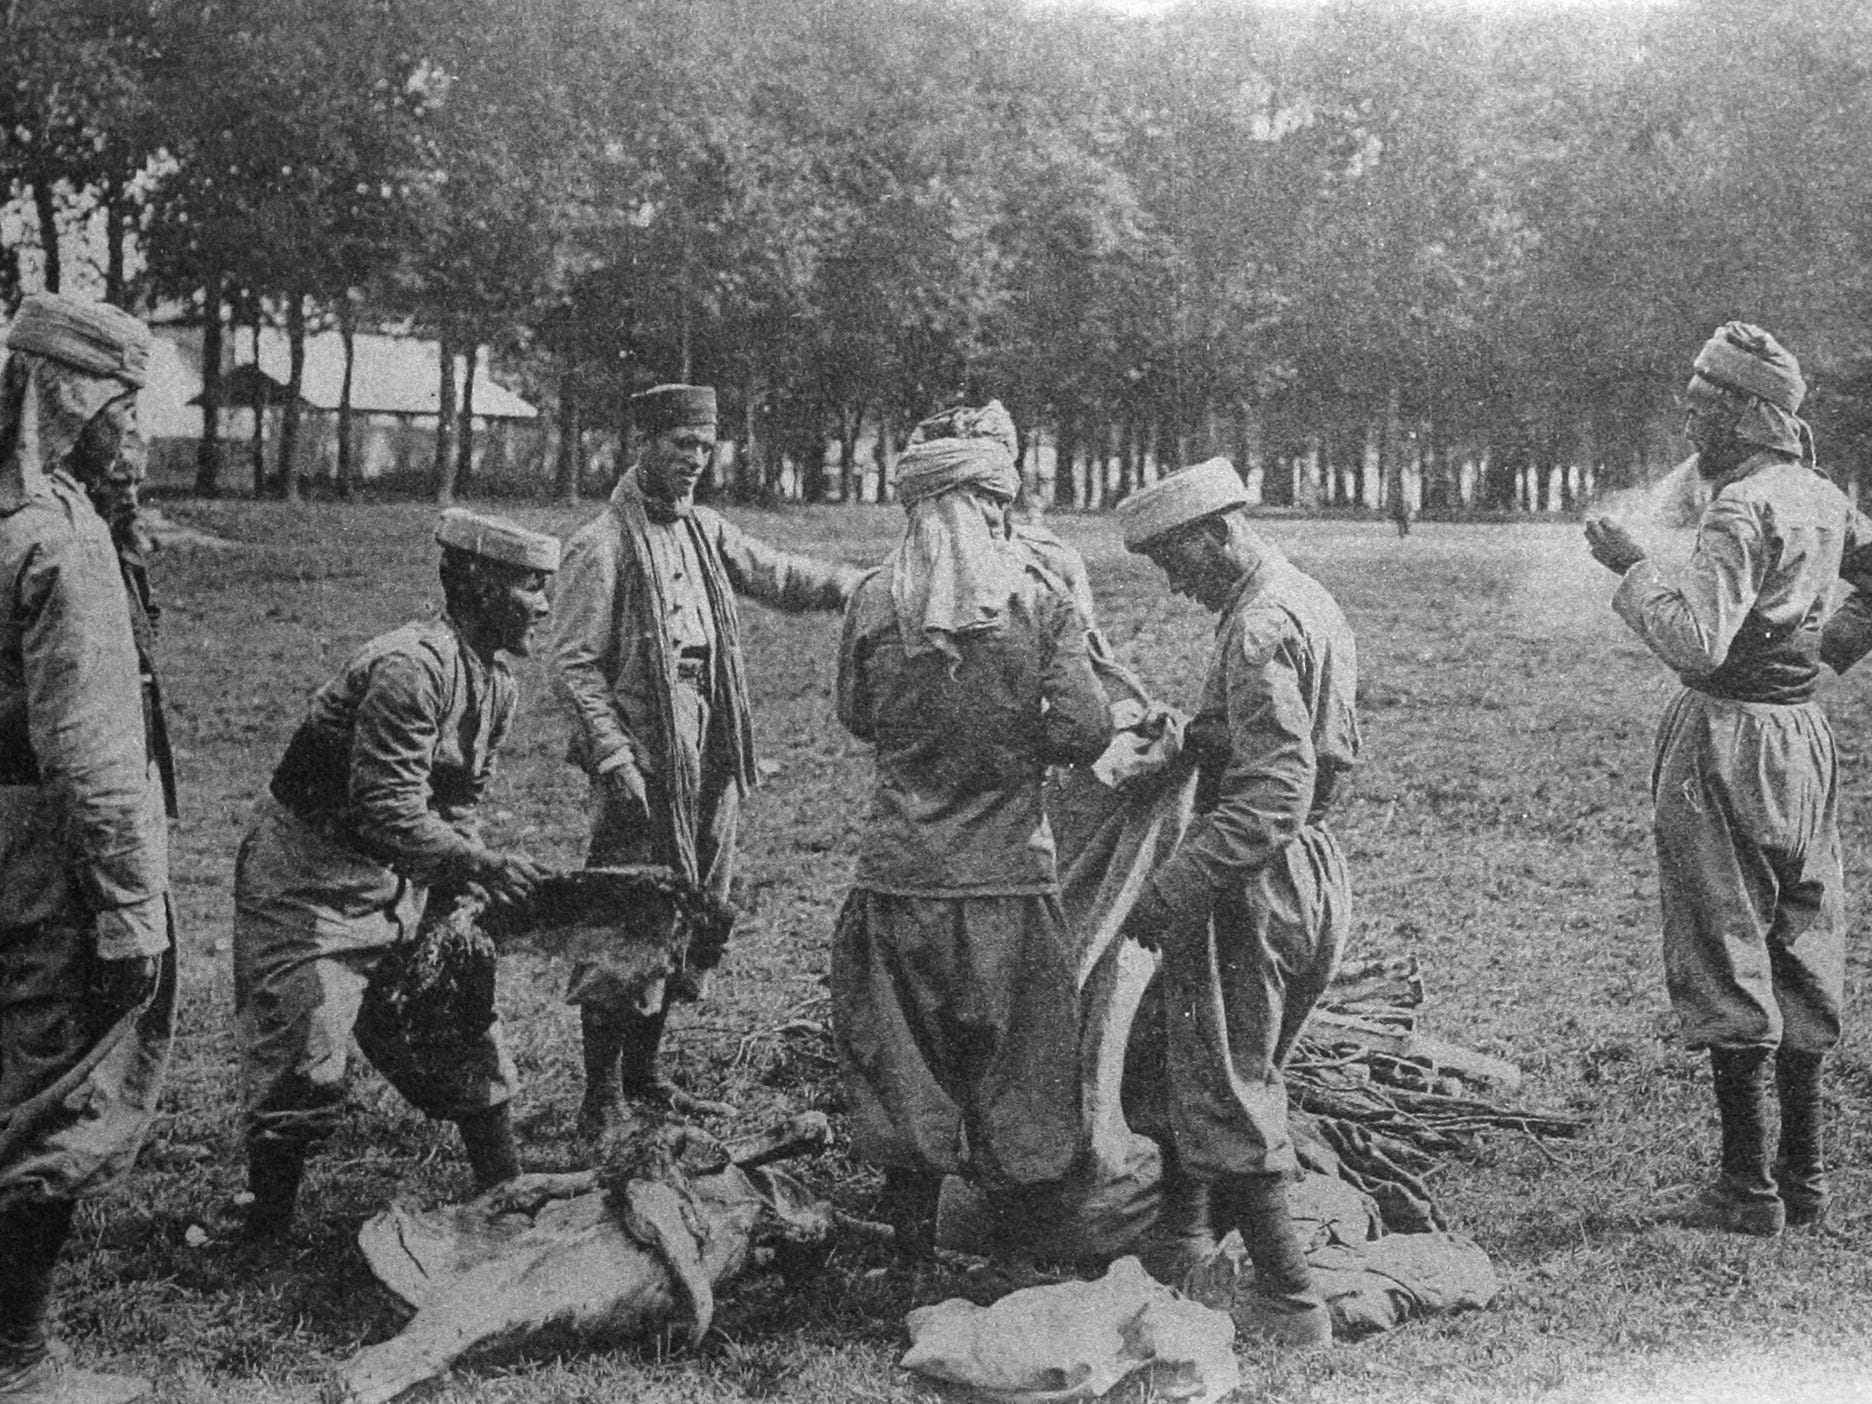 A file photo taken in 1914 shows a postcard released by the Historial de Peronne (WWI Museum) of a meat distribution in France to Algerian soldiers from the French colonies during WWI.